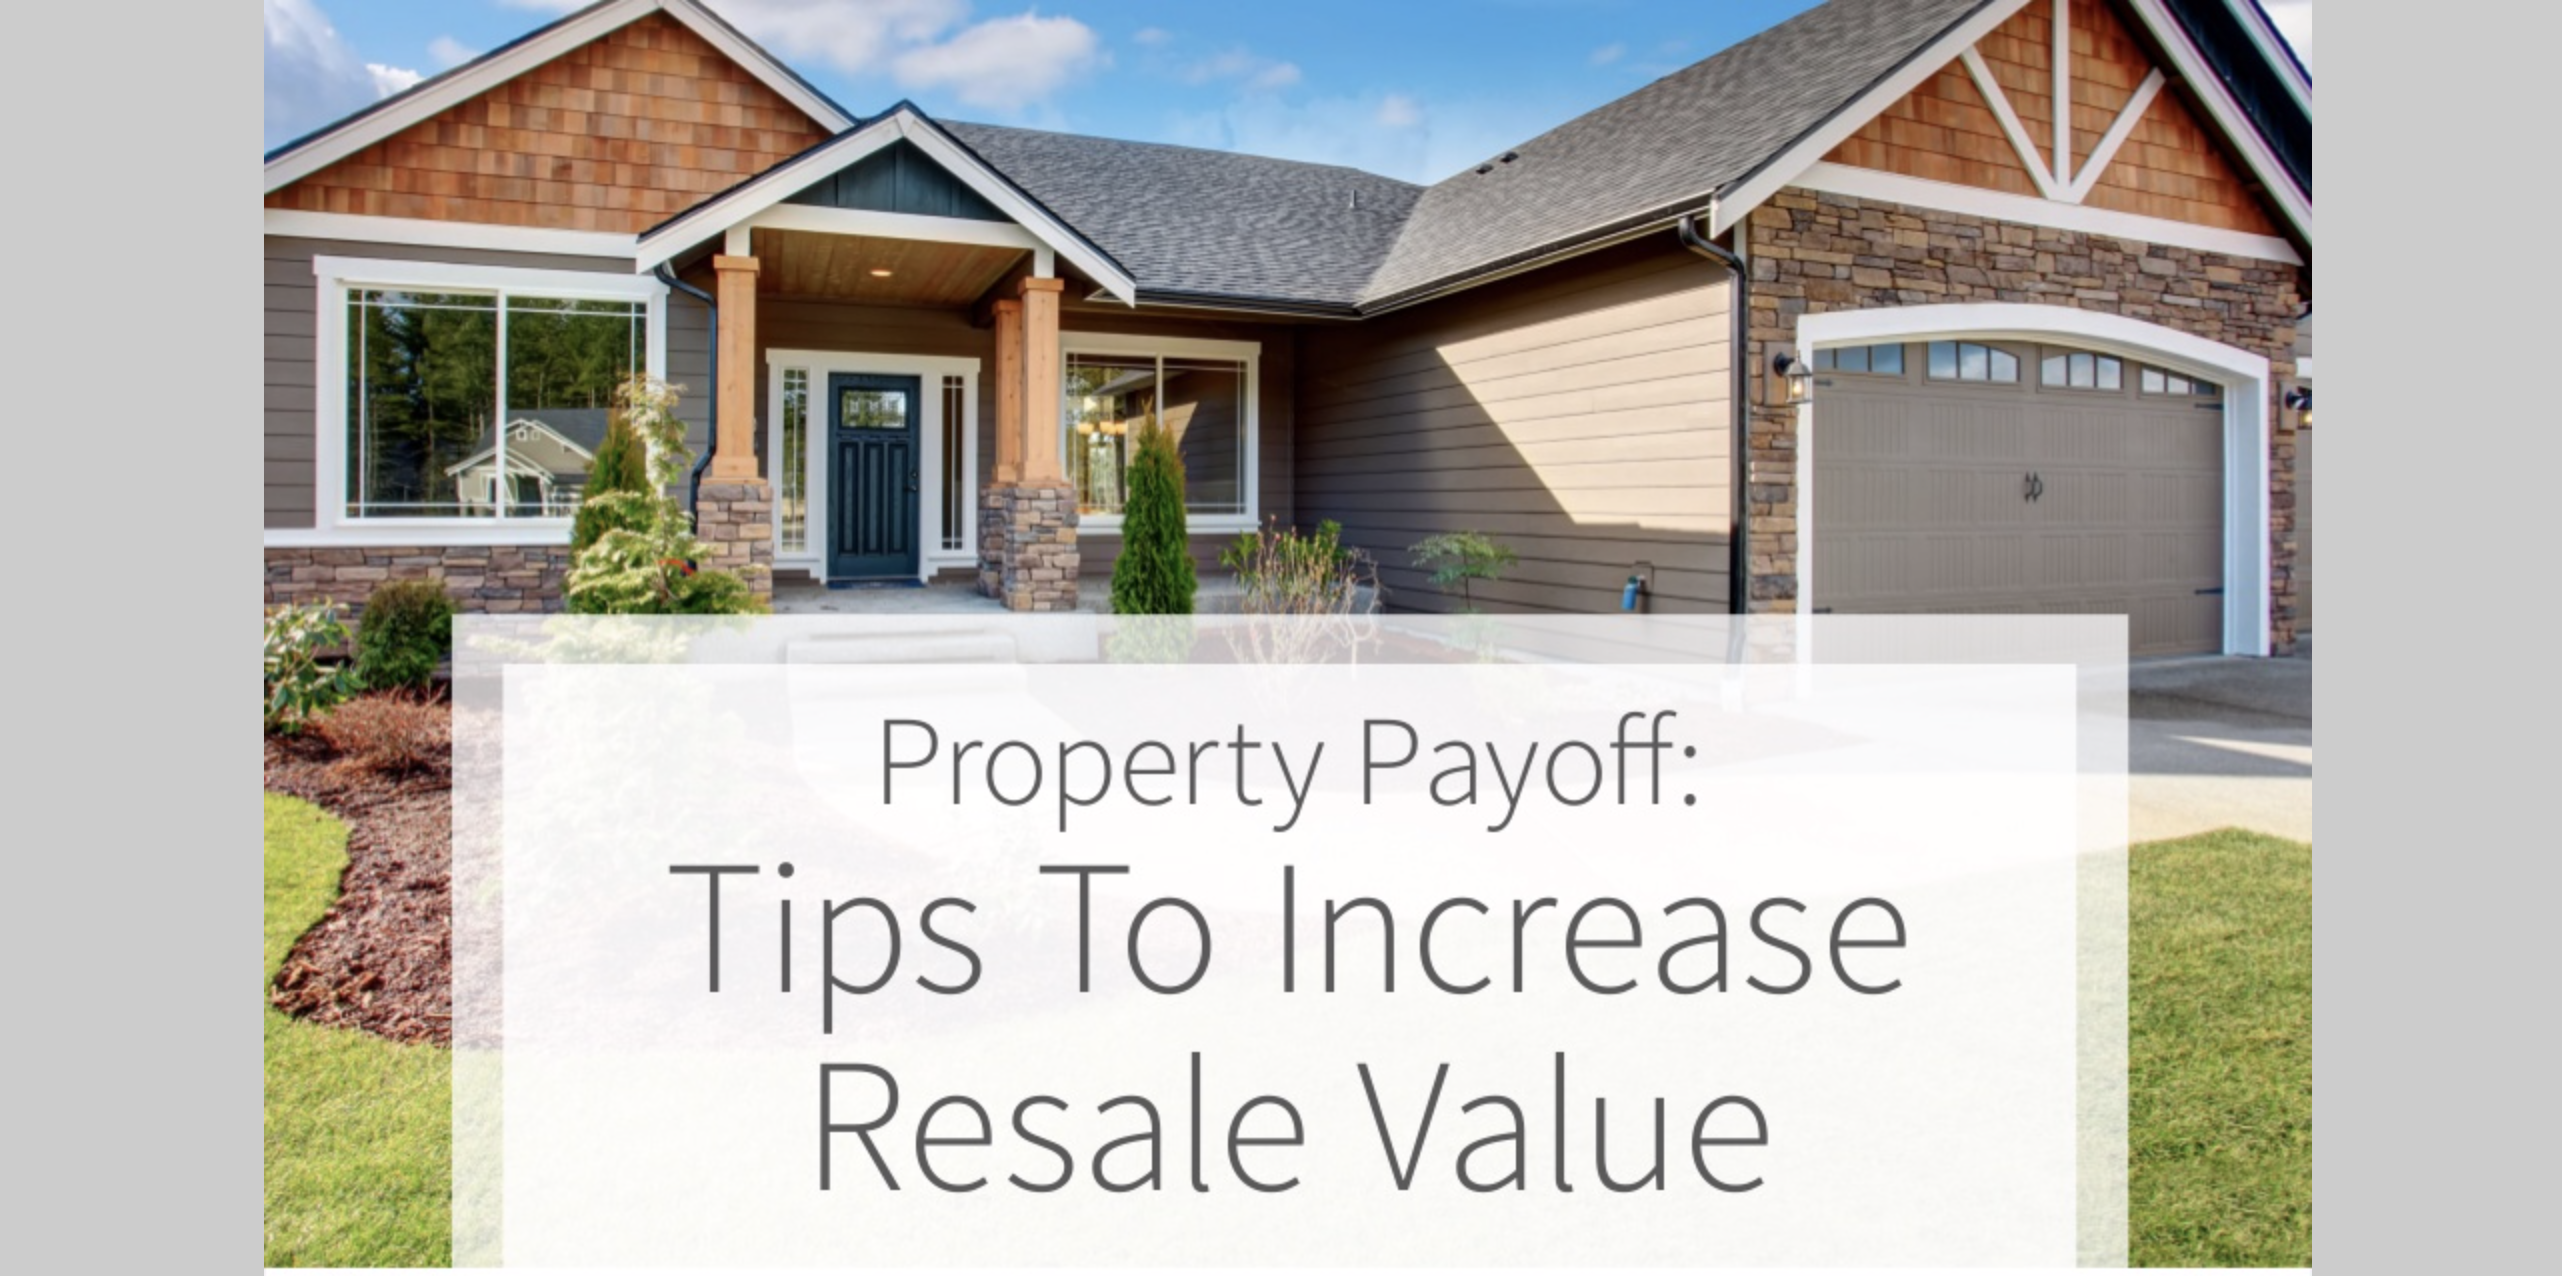 Property Payoff: Tips To Increase Resale Value